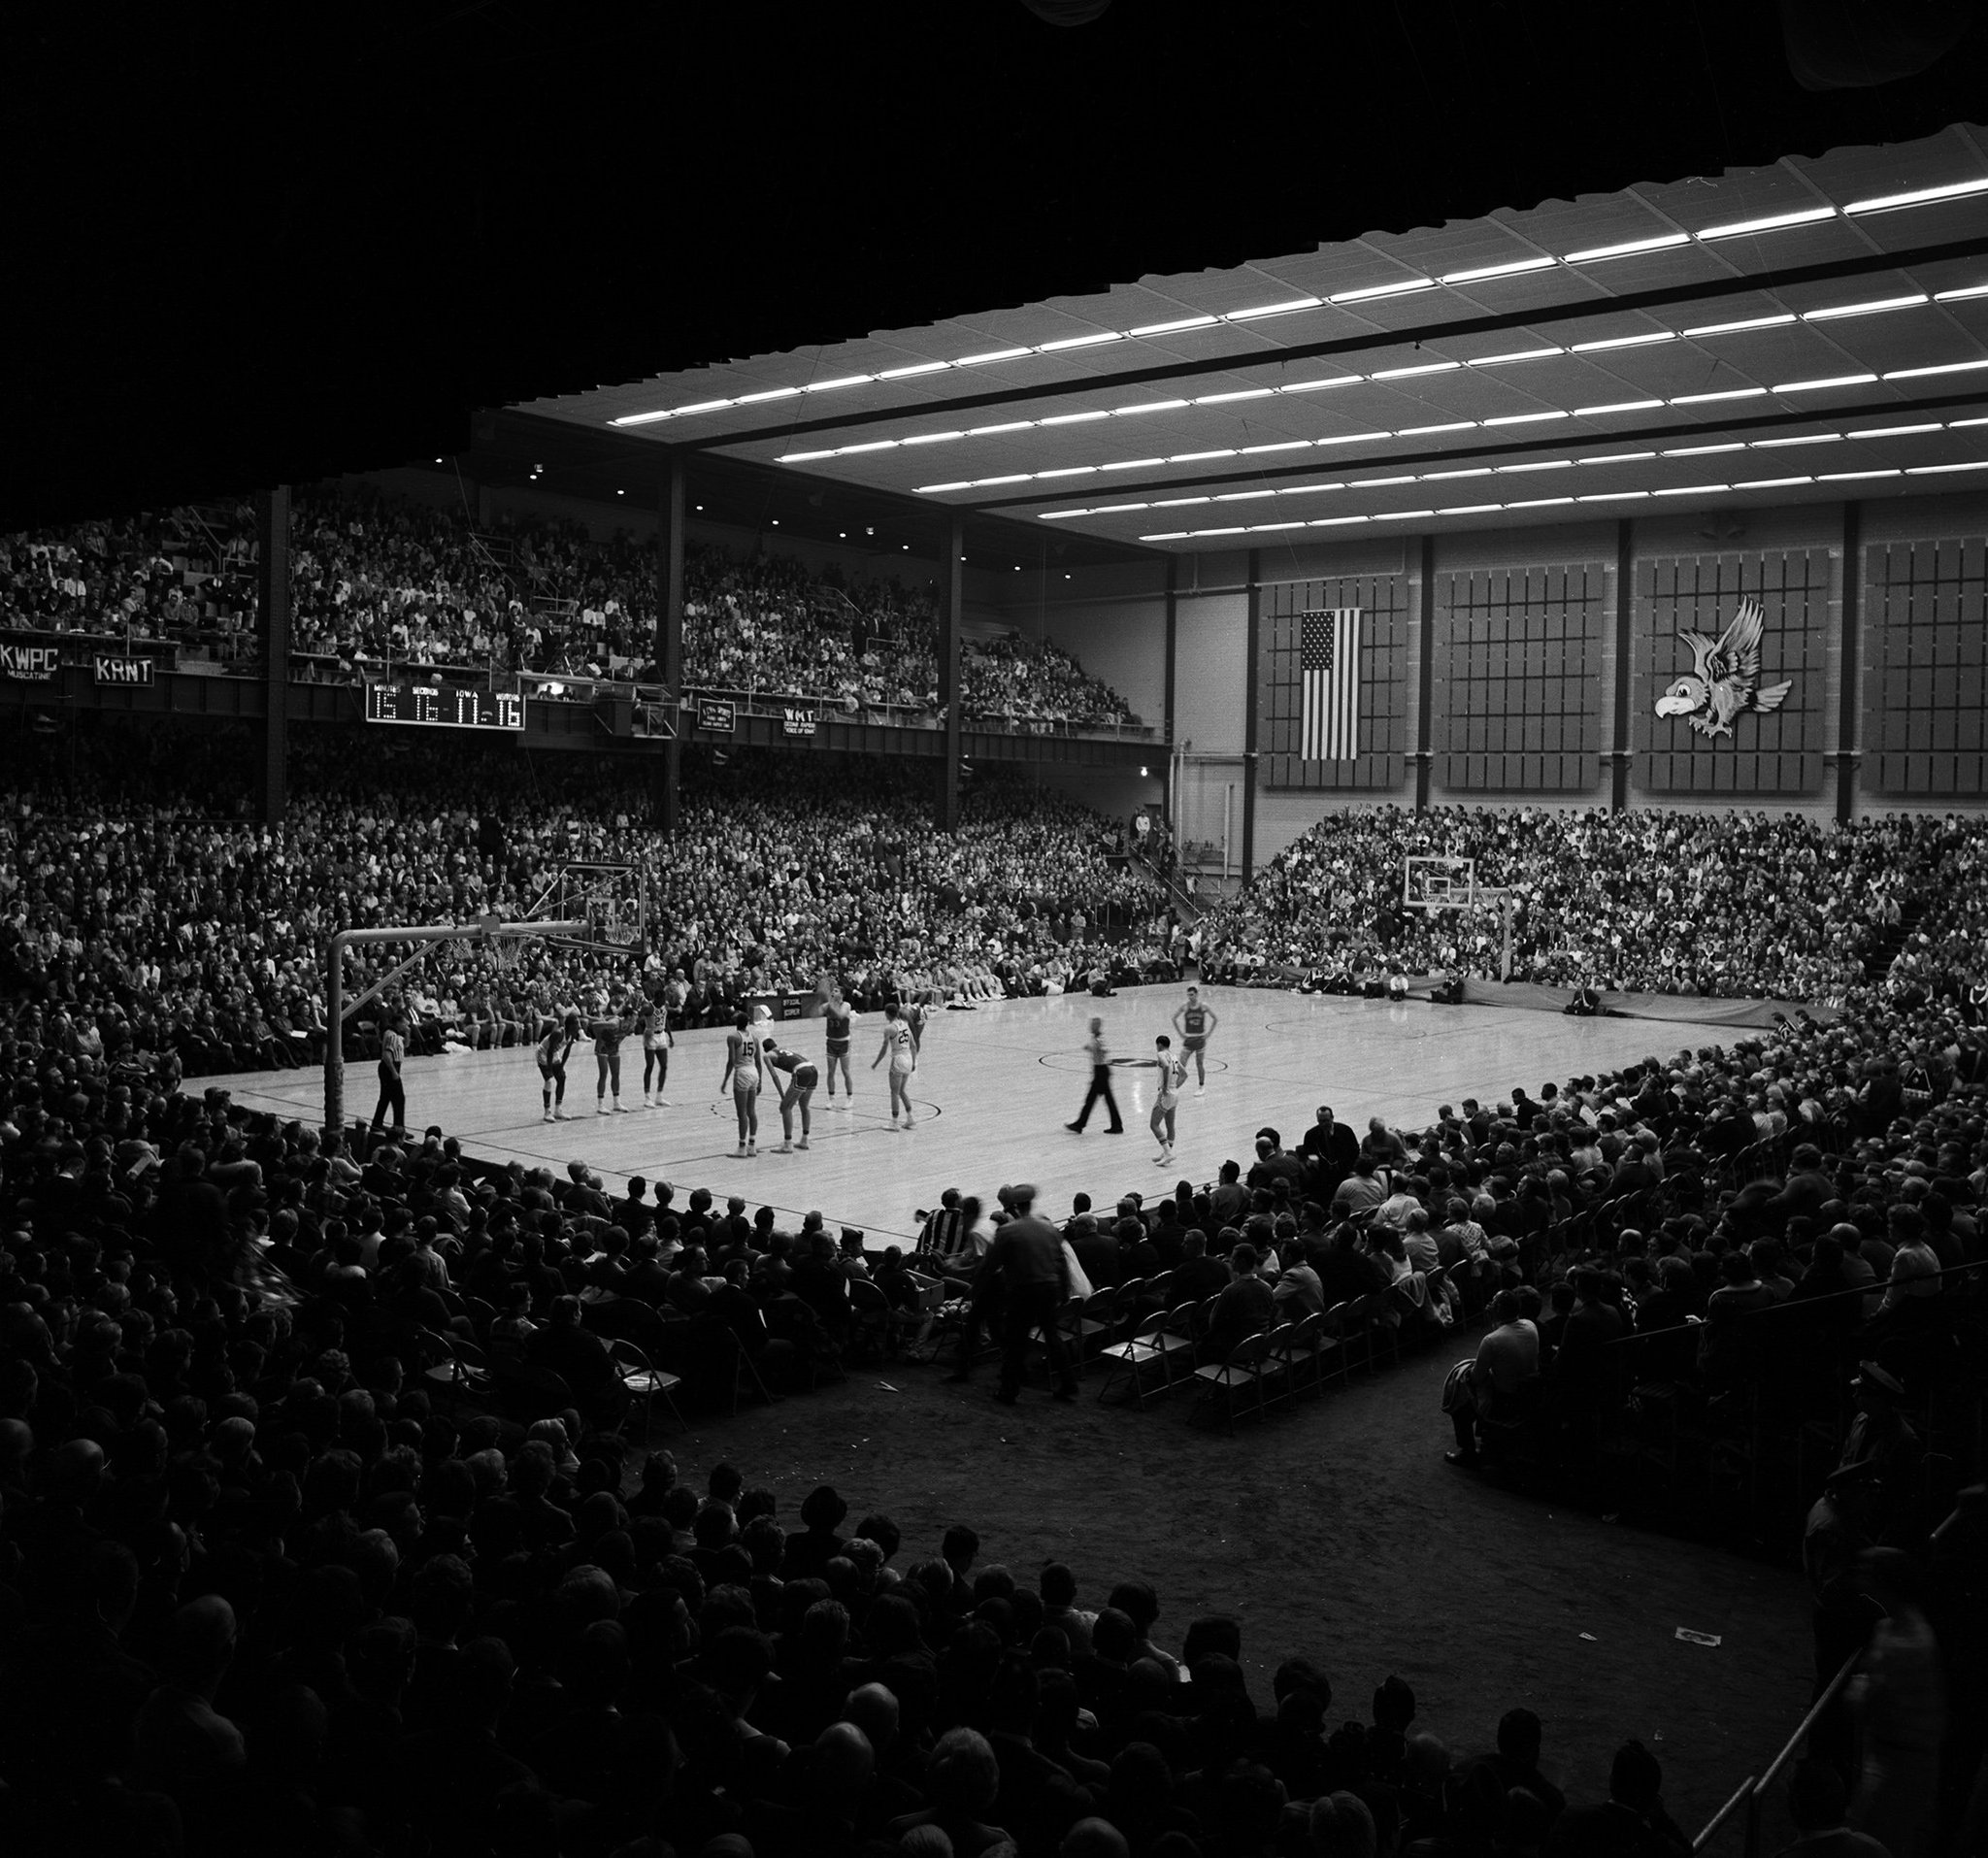 #TBT Iowa played its basketball games in the Field House for more than 50 years until moving into Carver-Hawkeye Arena in 1983. #Hawkeyes https://t.co/9ZIfBq5nQz